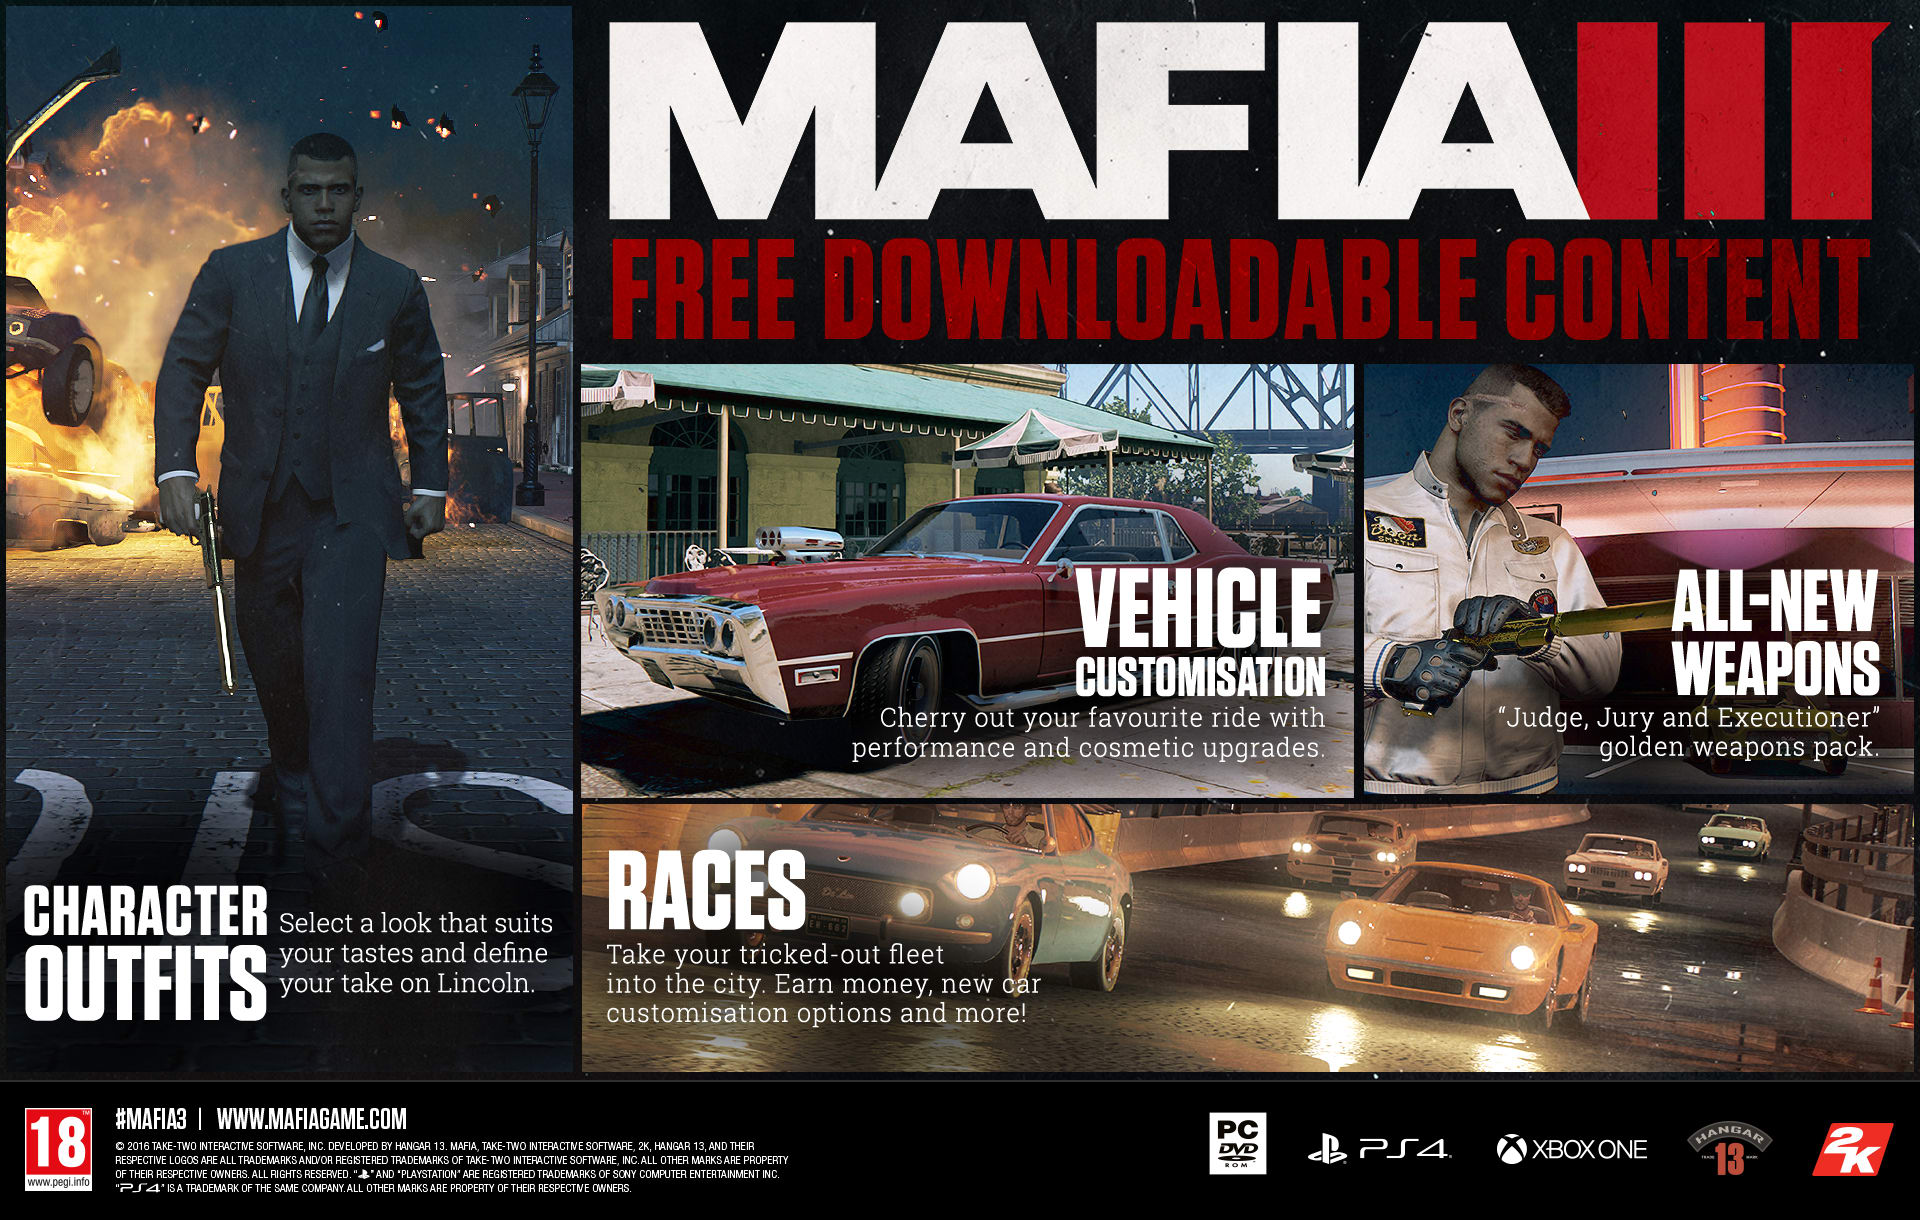 http://img.game.co.uk/images/content/SpecialEditions/Mafia3_Free_DLC_One_Sheet_CLEAN_ENG.jpg